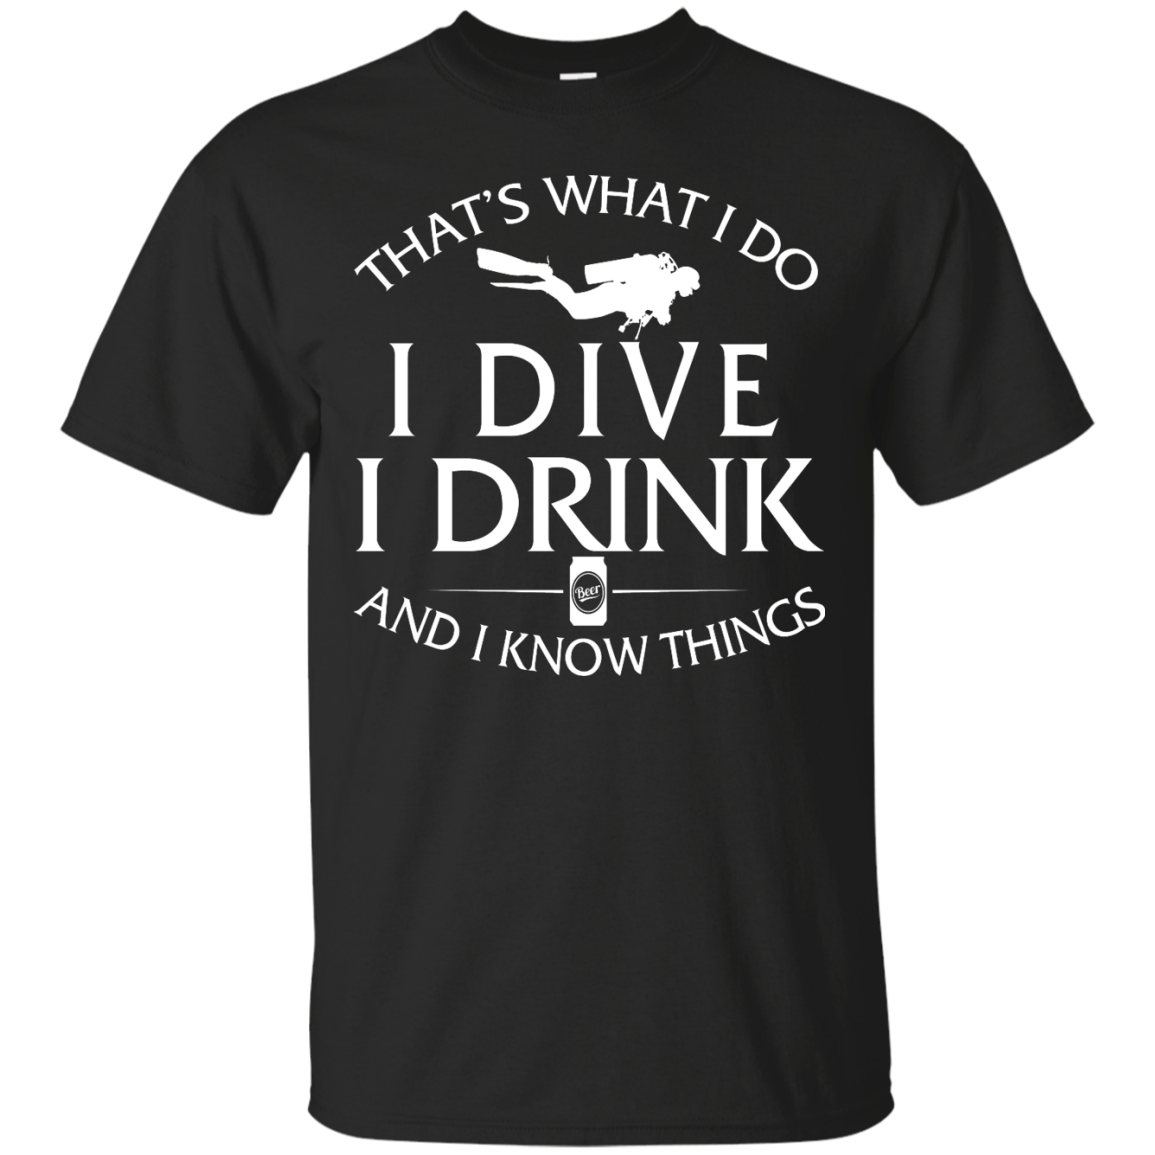 Diving T Shirt: That's What I Do, I Dive, I Drink and I Know Things